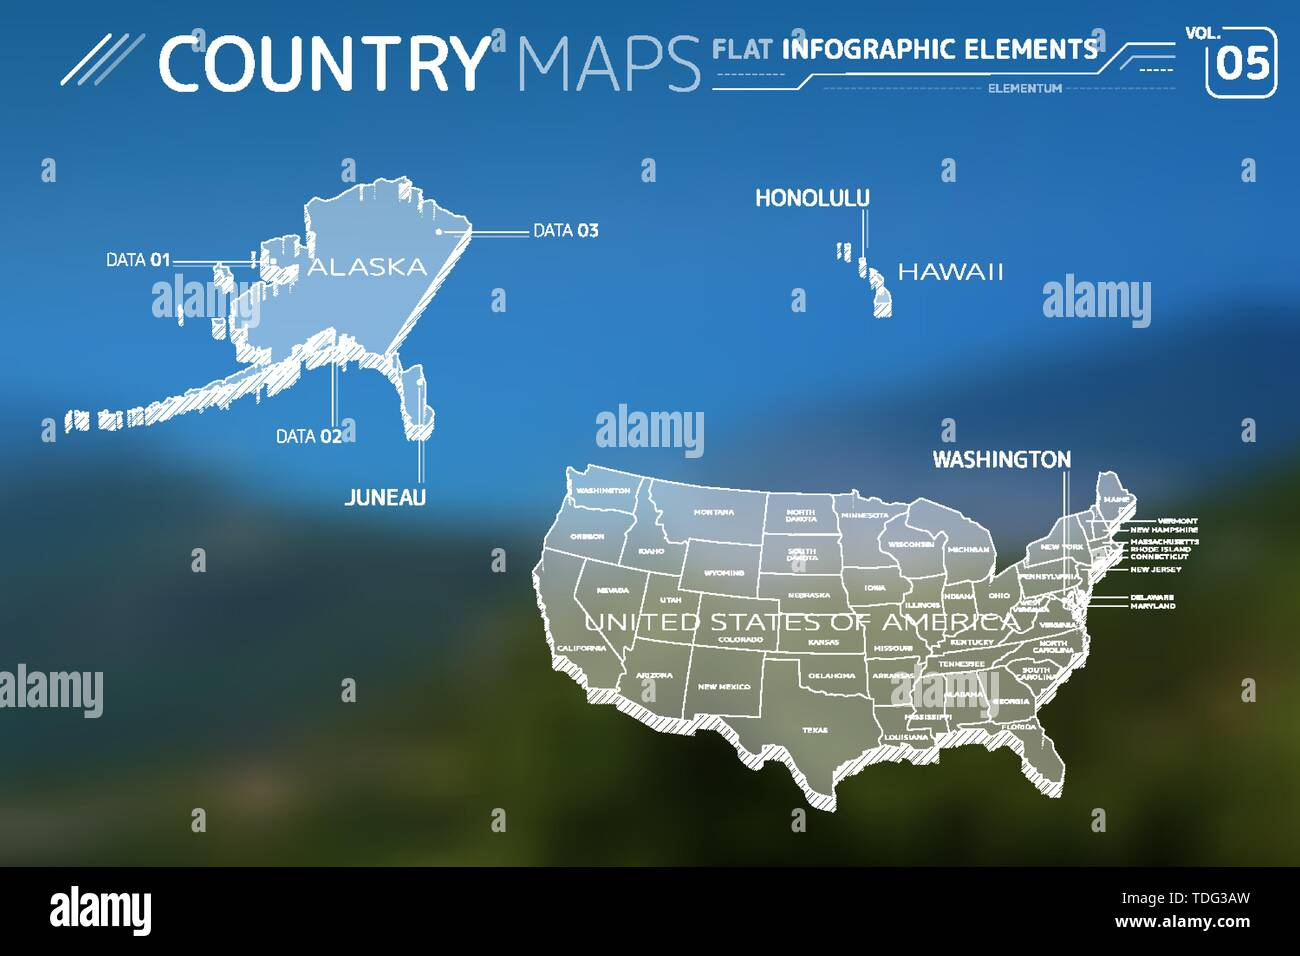 United States Map Alaska And Hawaii Stock Photos & United States Map on western states with capitol s, western rivers map of usa, western usa map with city, western region us, western region map with their names,